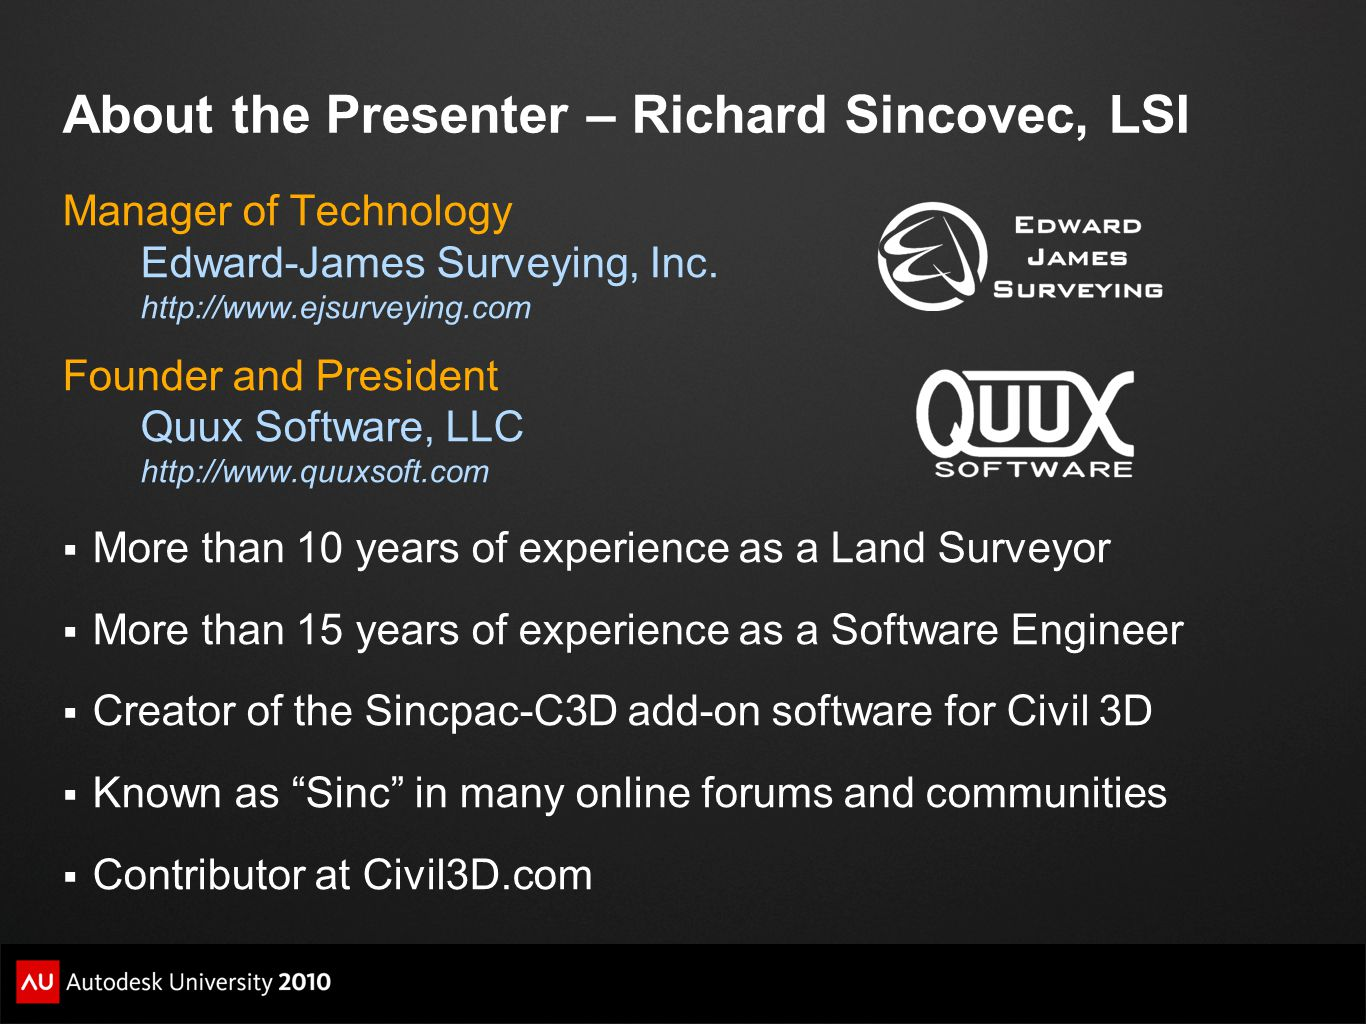 About the Presenter – Richard Sincovec, LSI